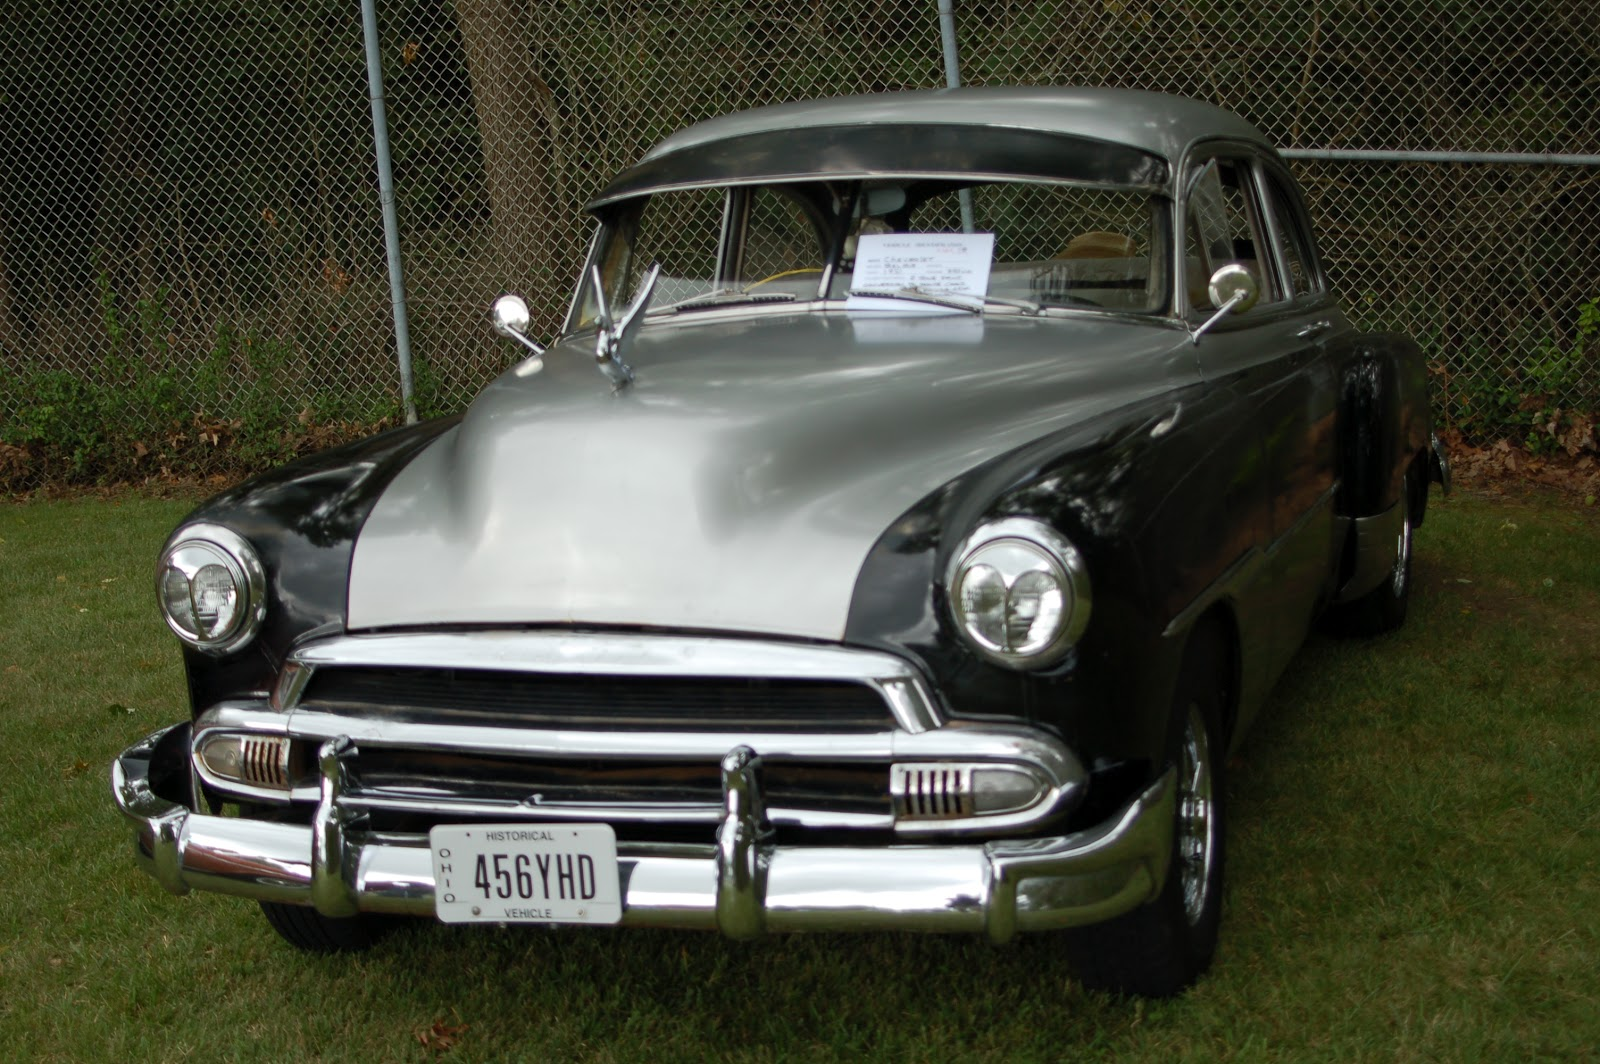 Turnerbudds Car Blog: Post War Vehicles at the Untouchables\' Show